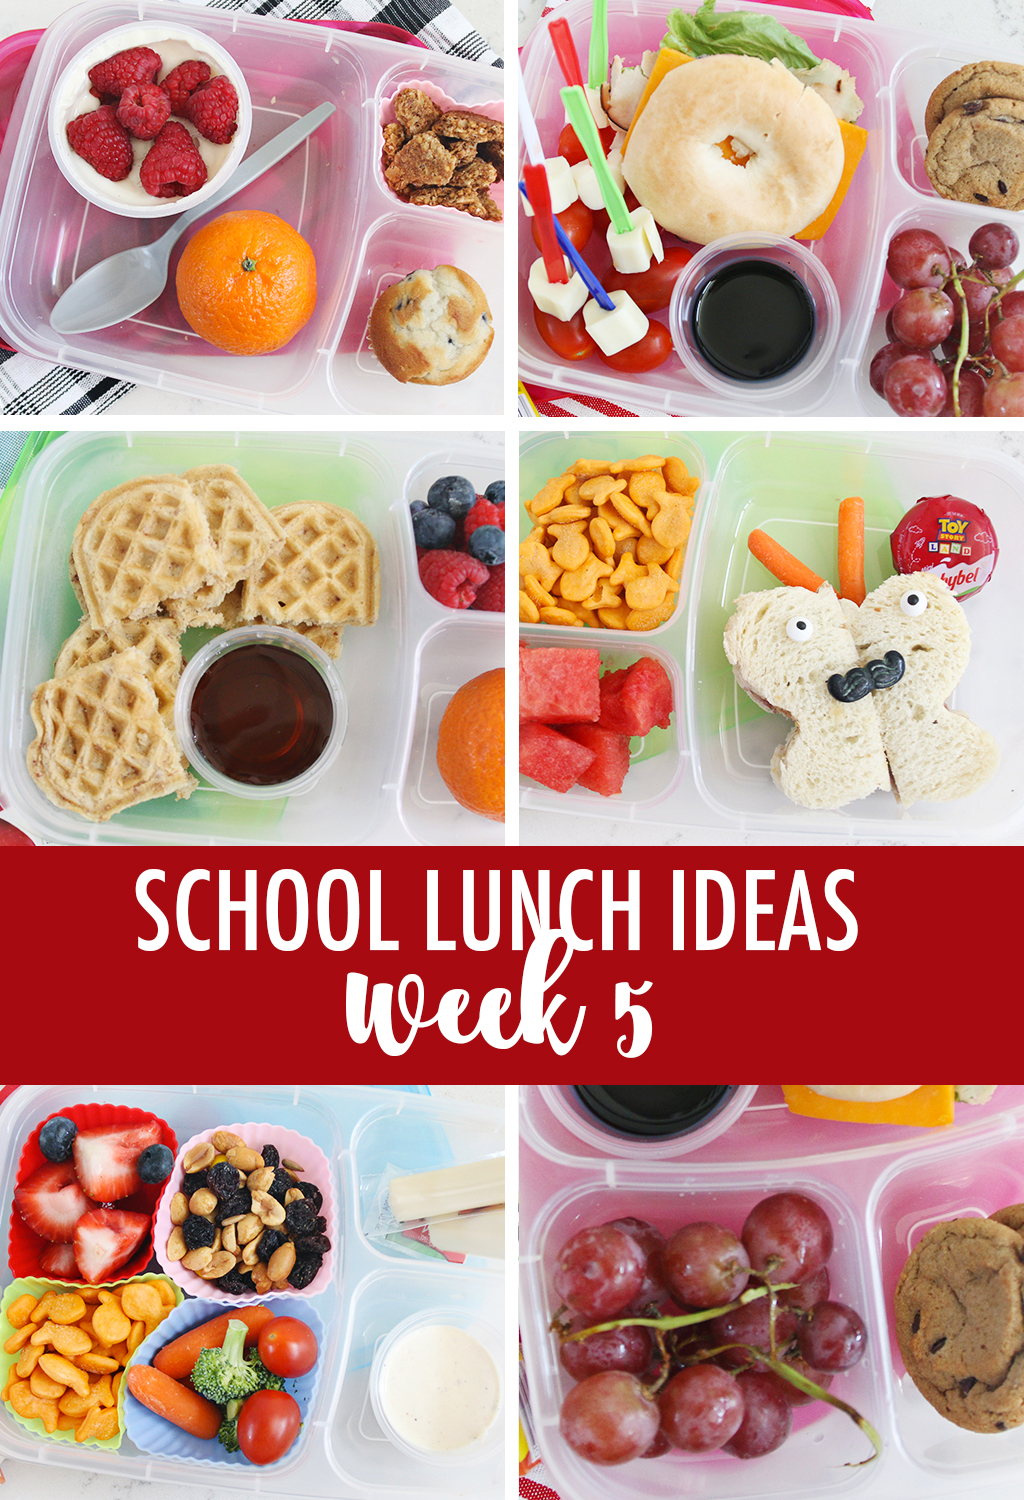 Week 5 School Lunch Ideas